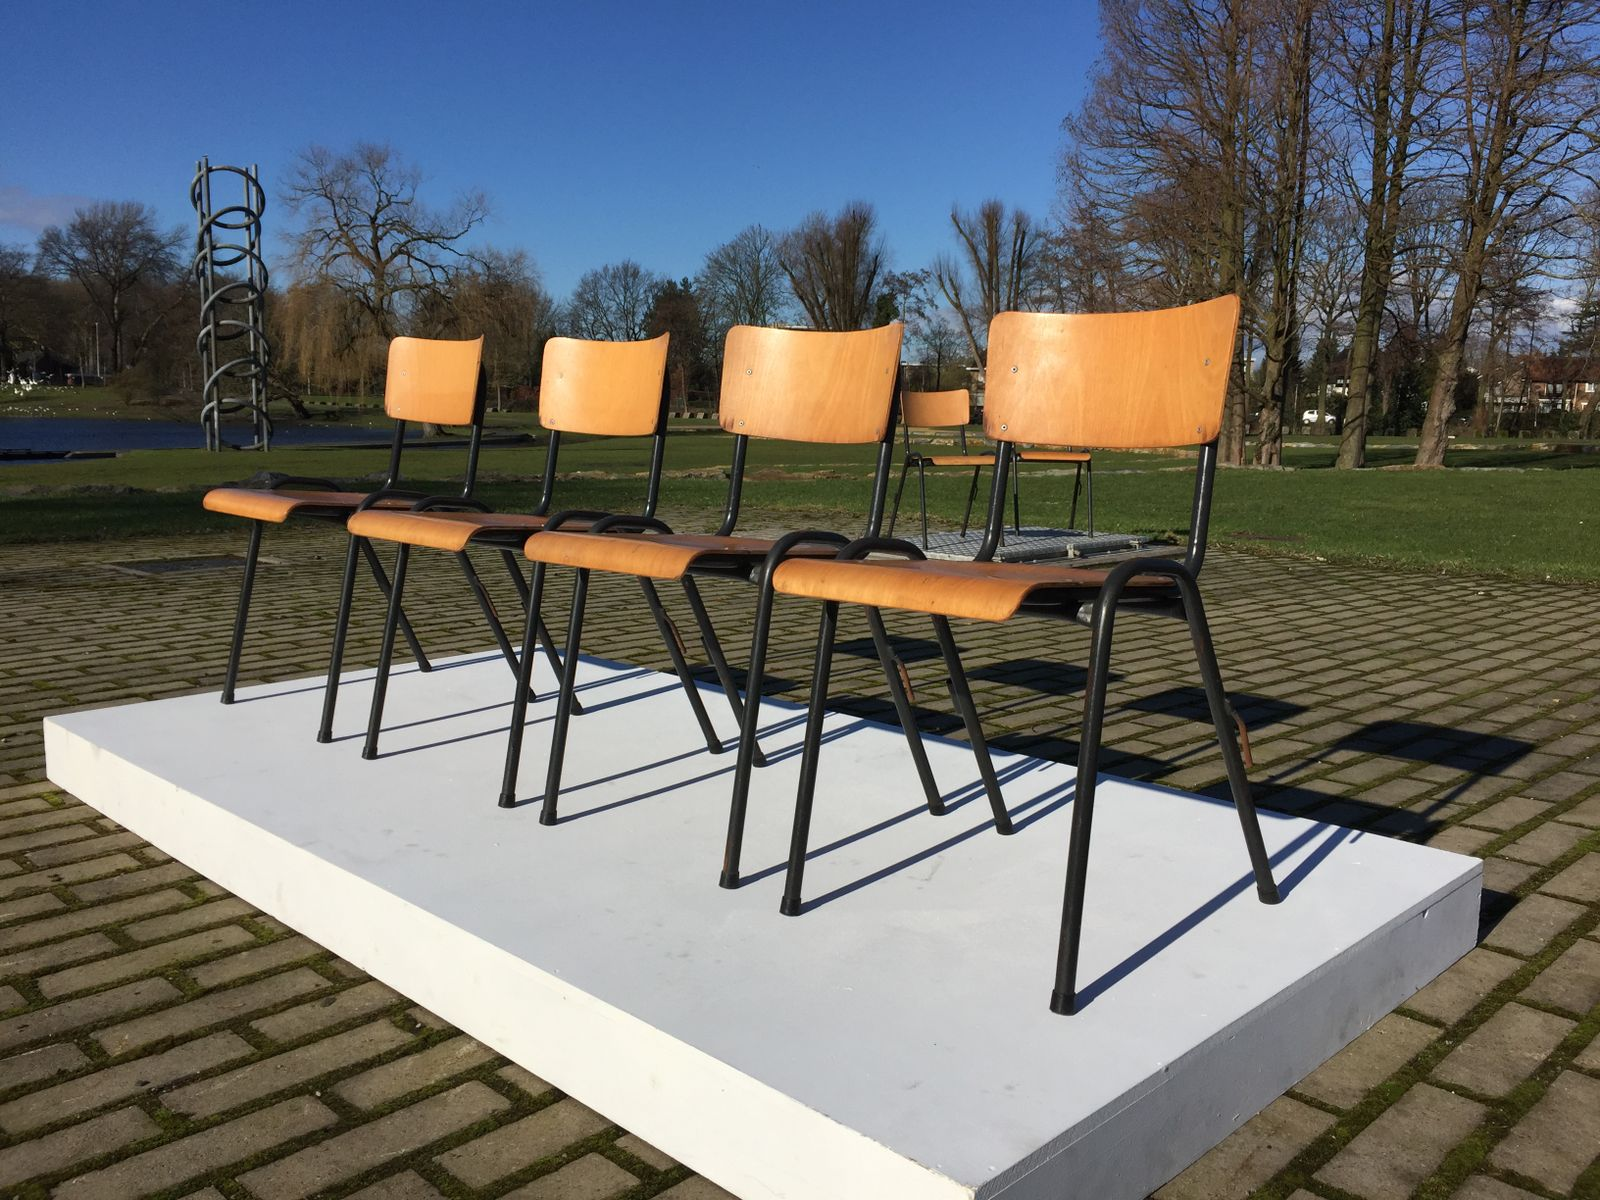 Industrial Birch Plywood Stackable Chairs Set of 10 for sale at